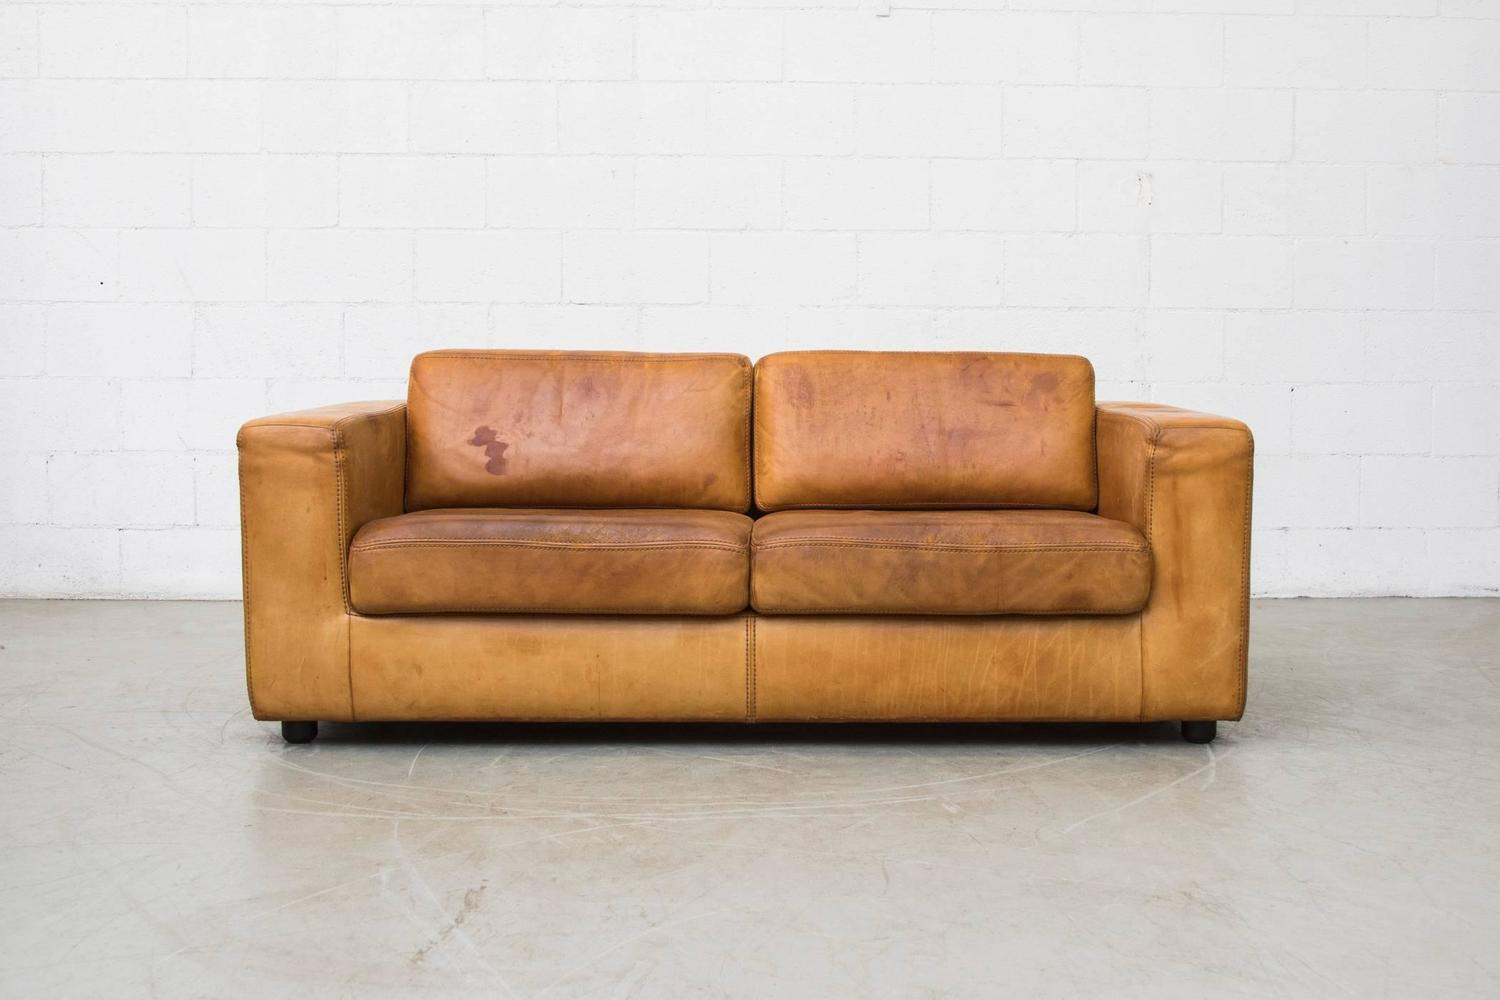 natural leather two cushion sofa by durlet at 1stdibs